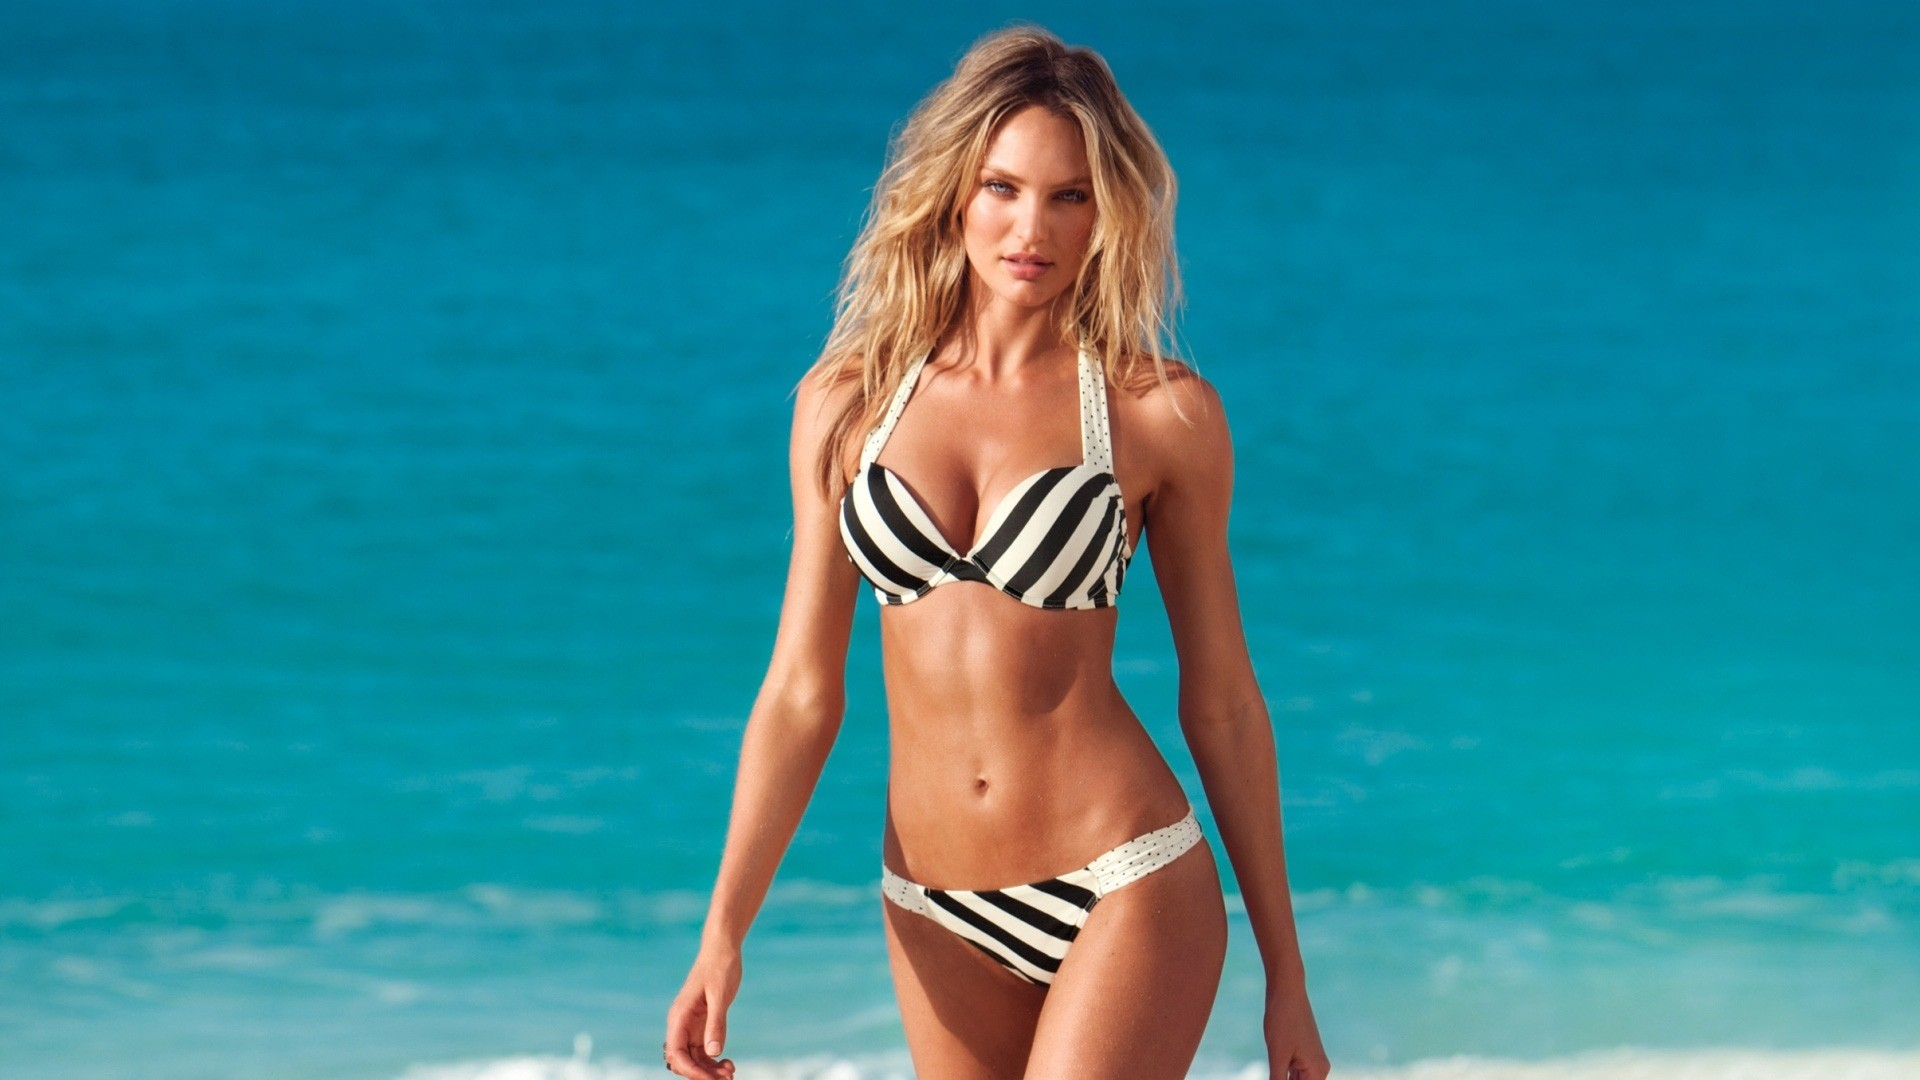 picture Candice swanepoel sexy 7 Photos